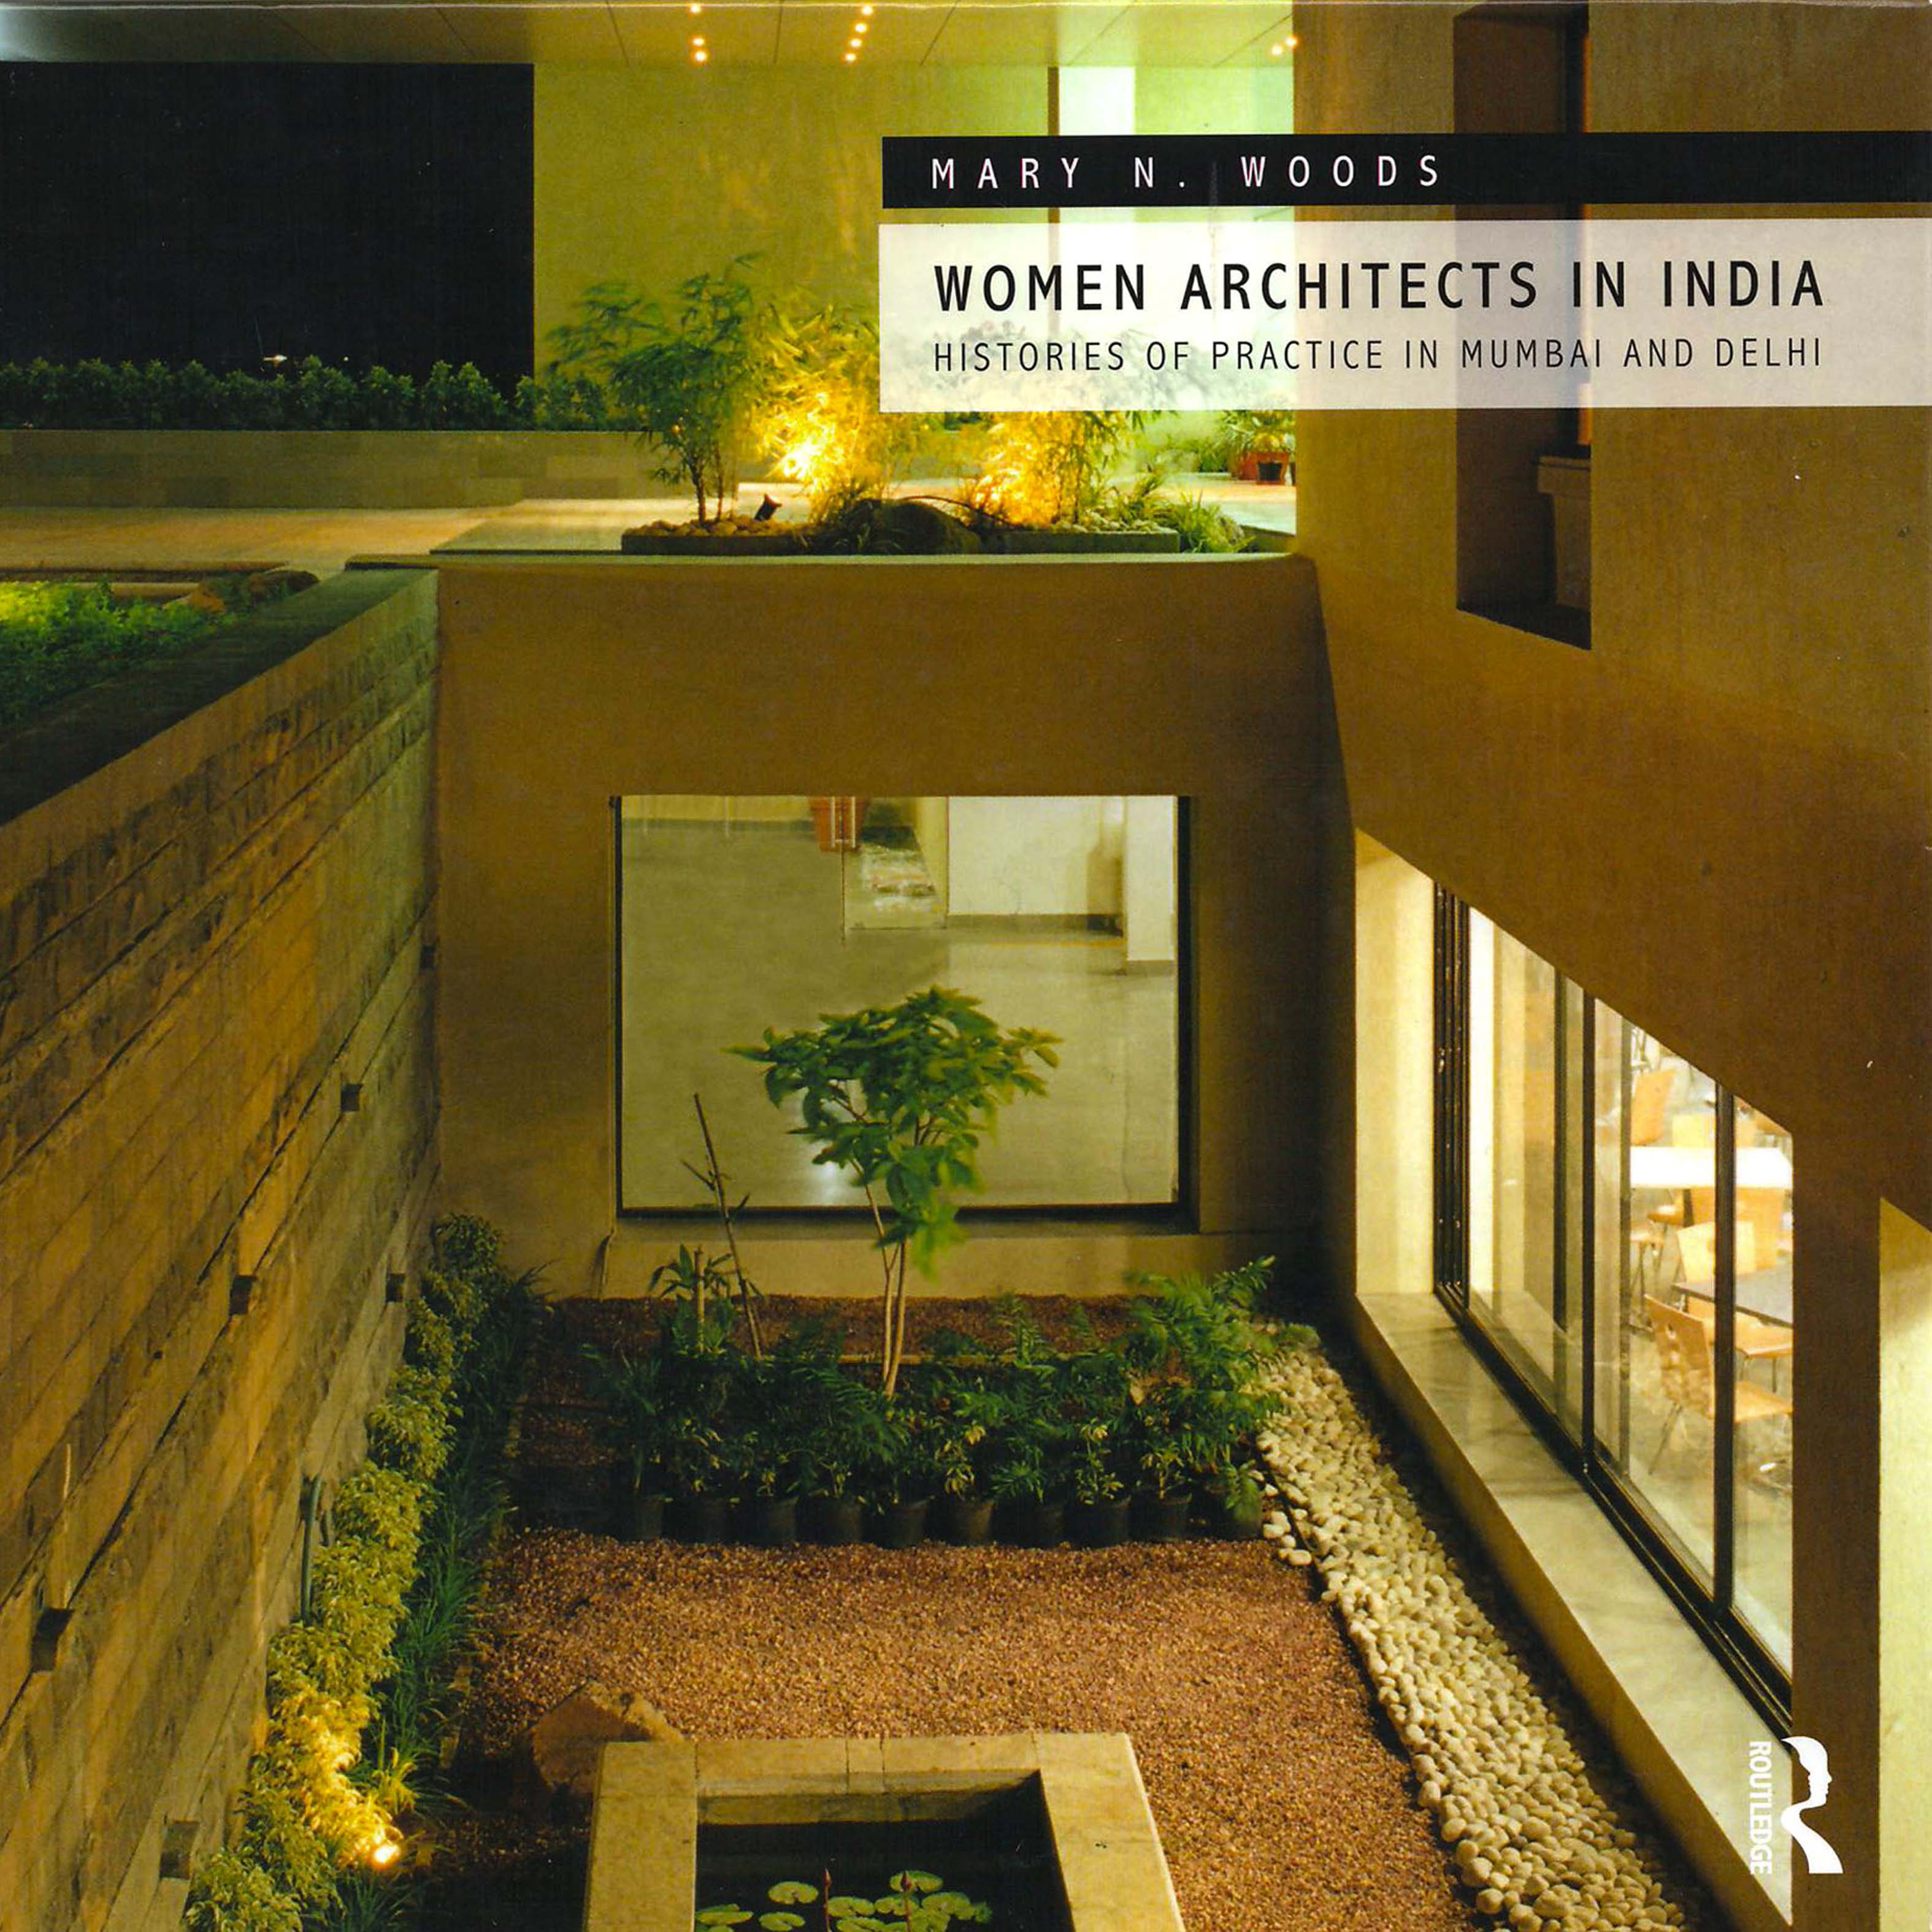 Women Architects in India - Histories of Practice in Mumbai and Delhi by Mary N. Woods; featuring Brinda Somaya - Book Launch at Cornell University, College of Architecture, Art and Planning, New York USA - 14th October 2016